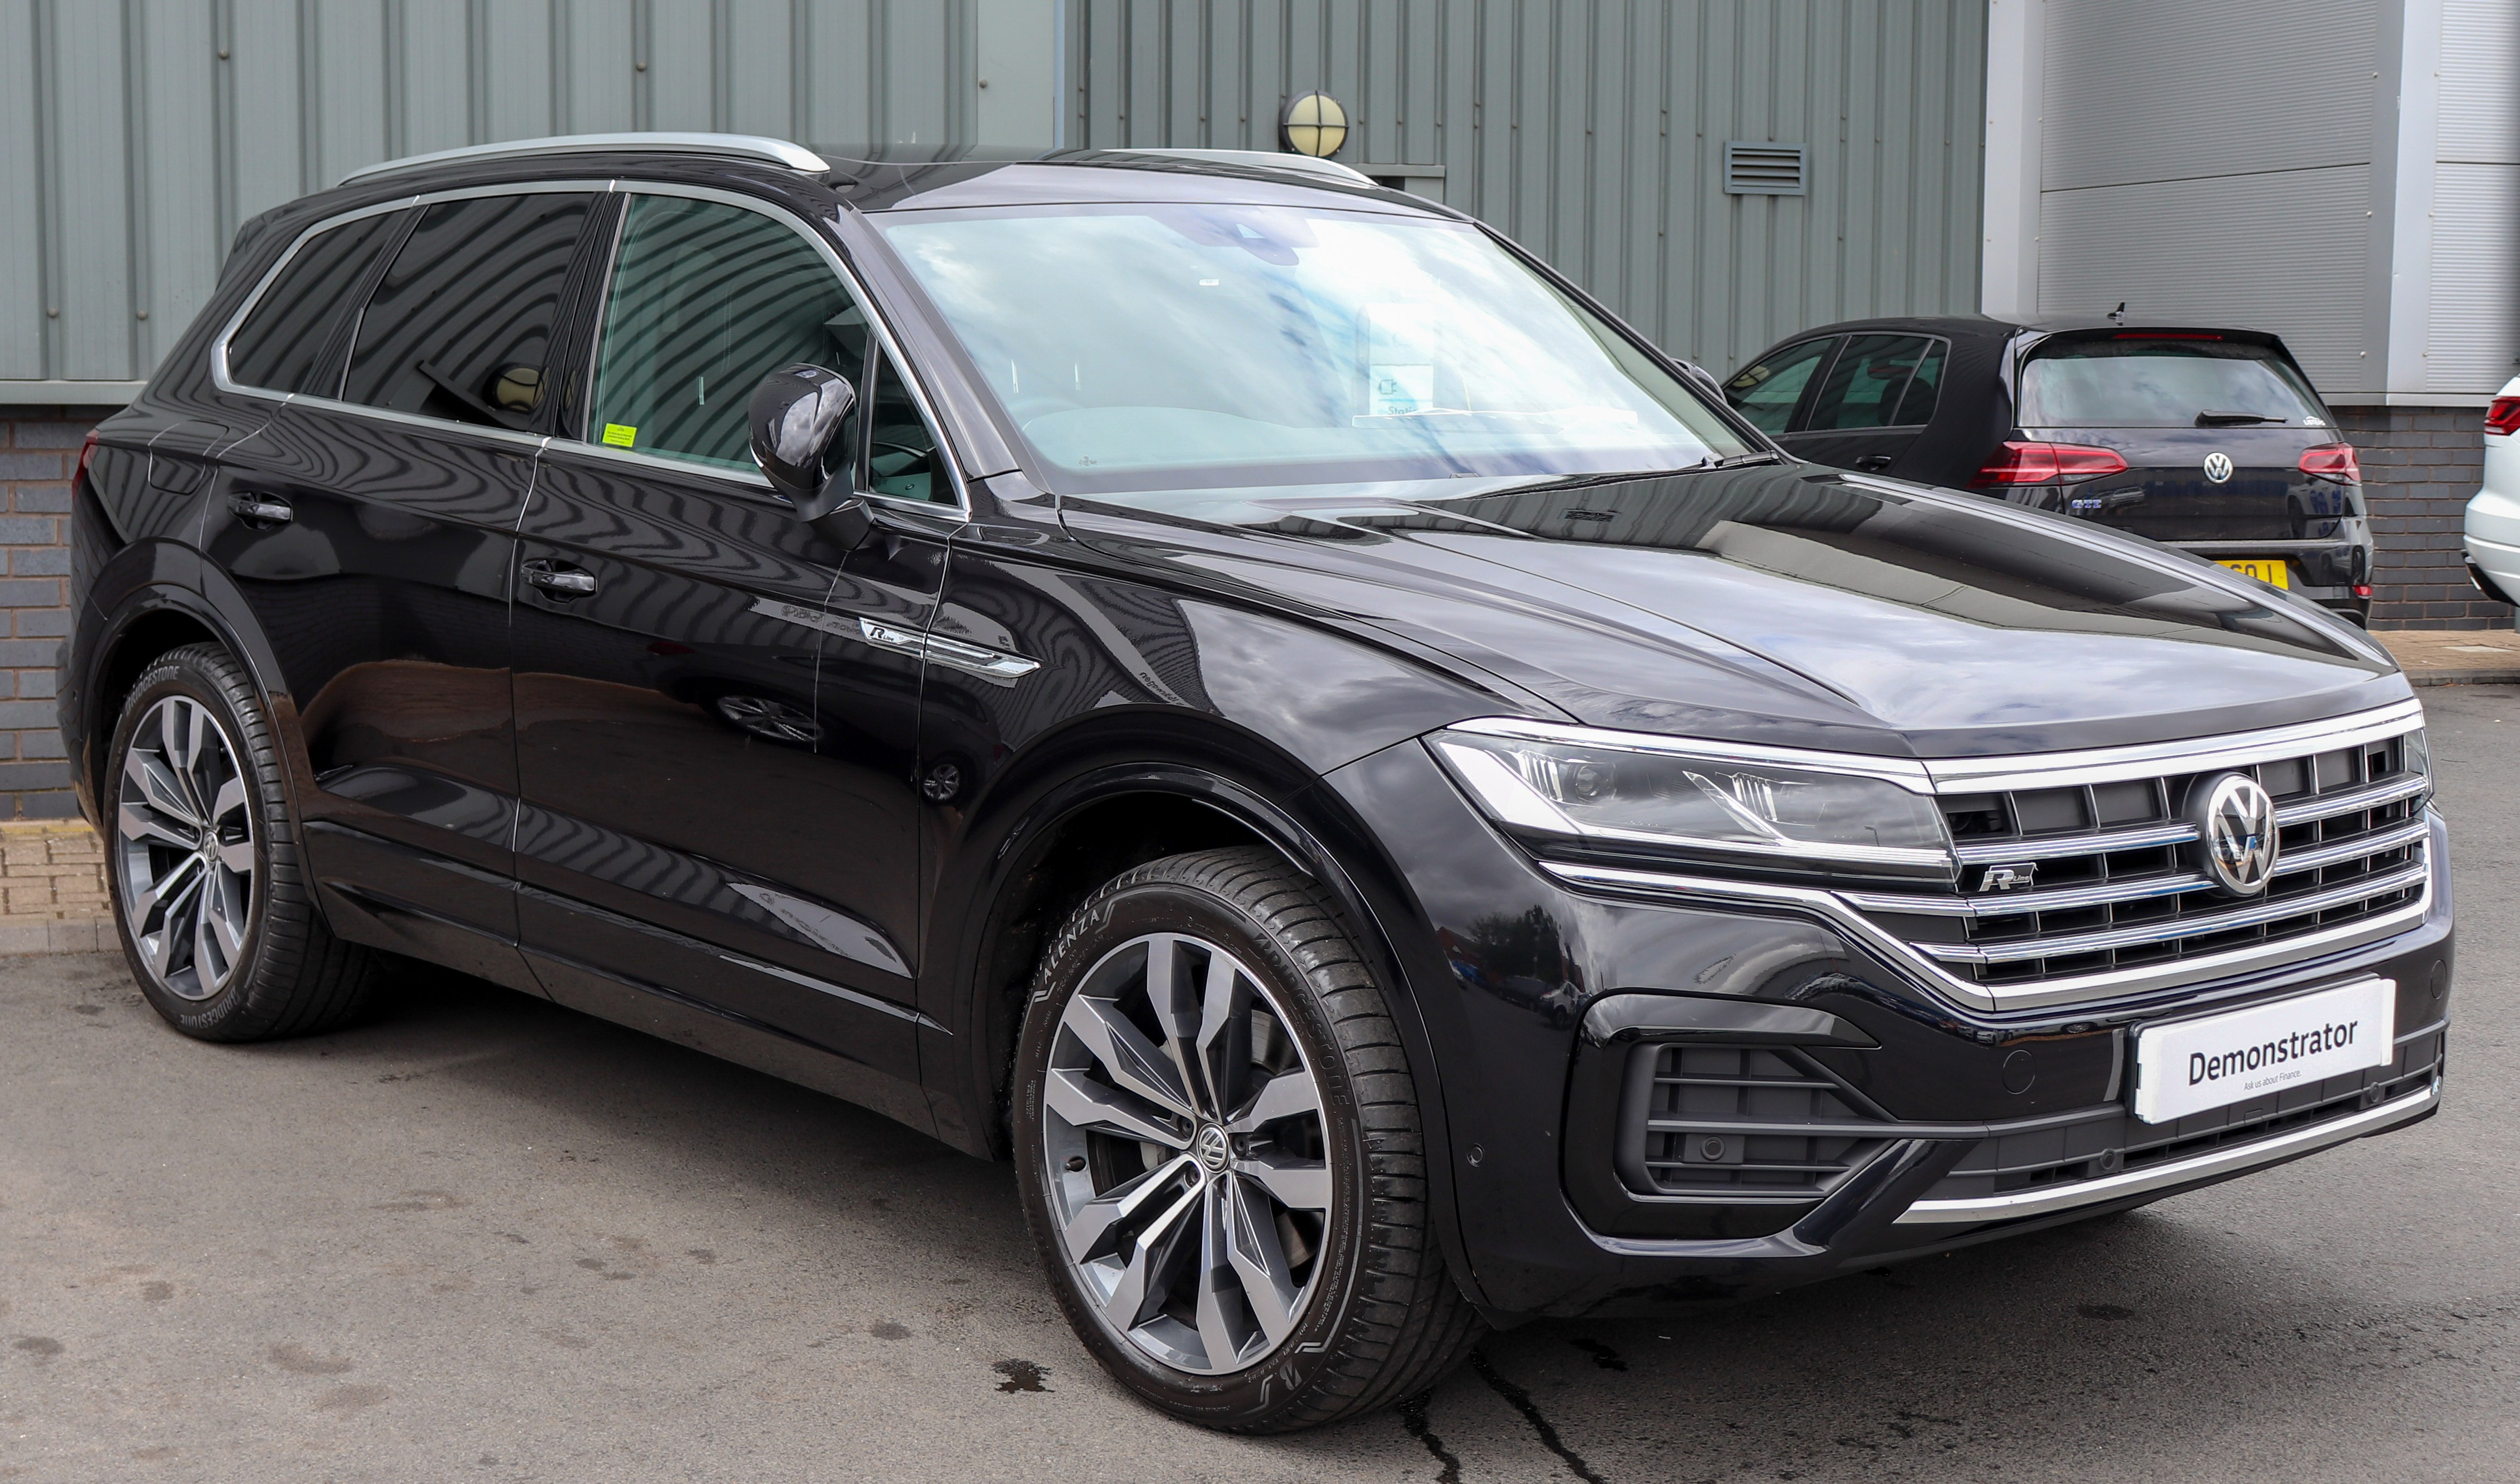 Volkswagen Touareg - The complete information and online sale with free shipping. Order and buy now for the lowest price in the best online store!